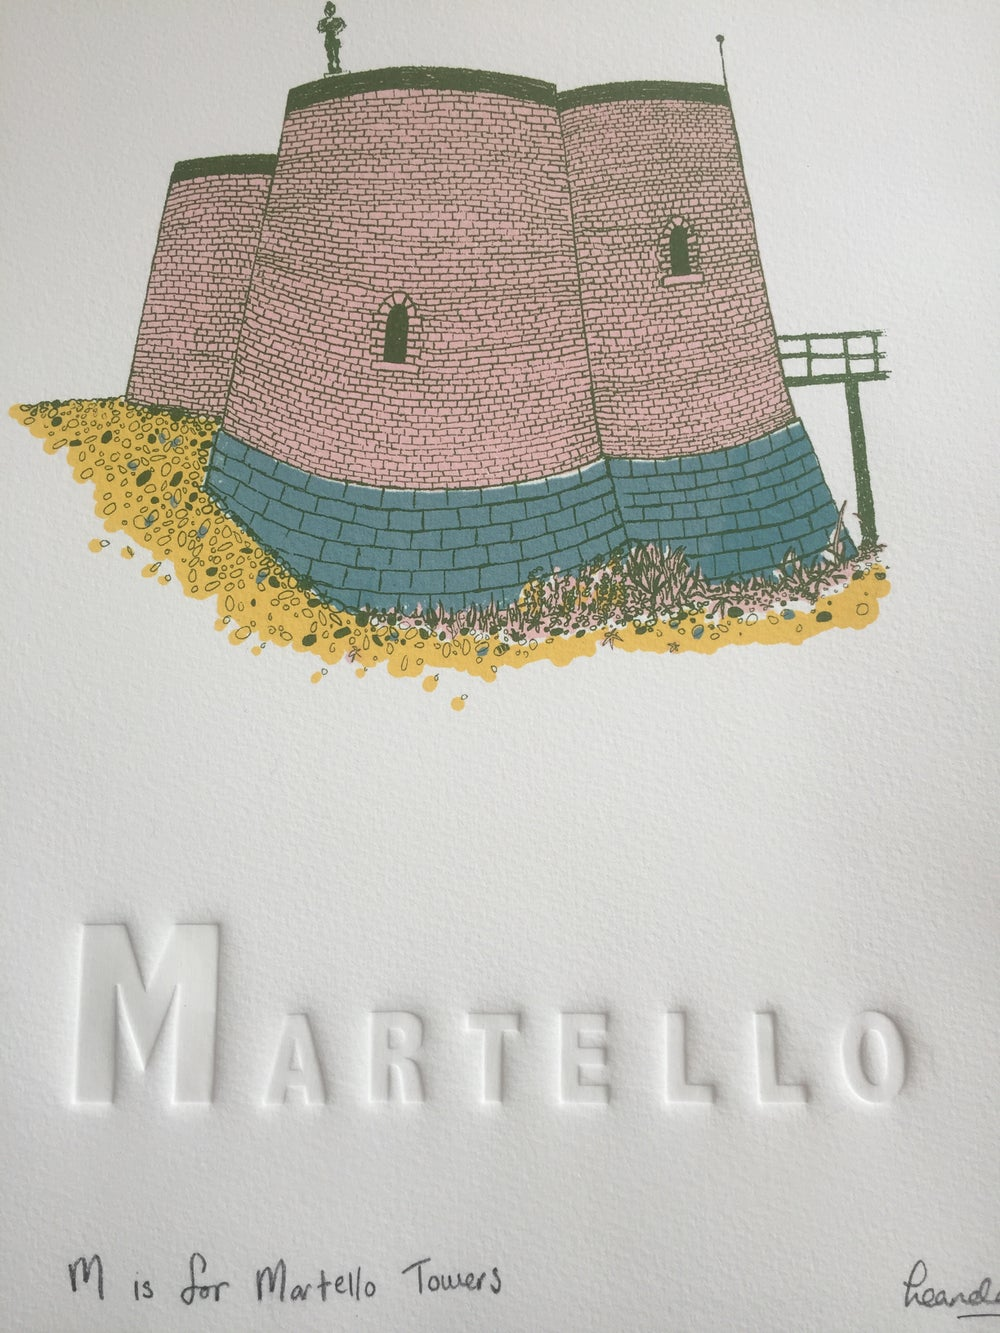 Image of M is for Martello Tower